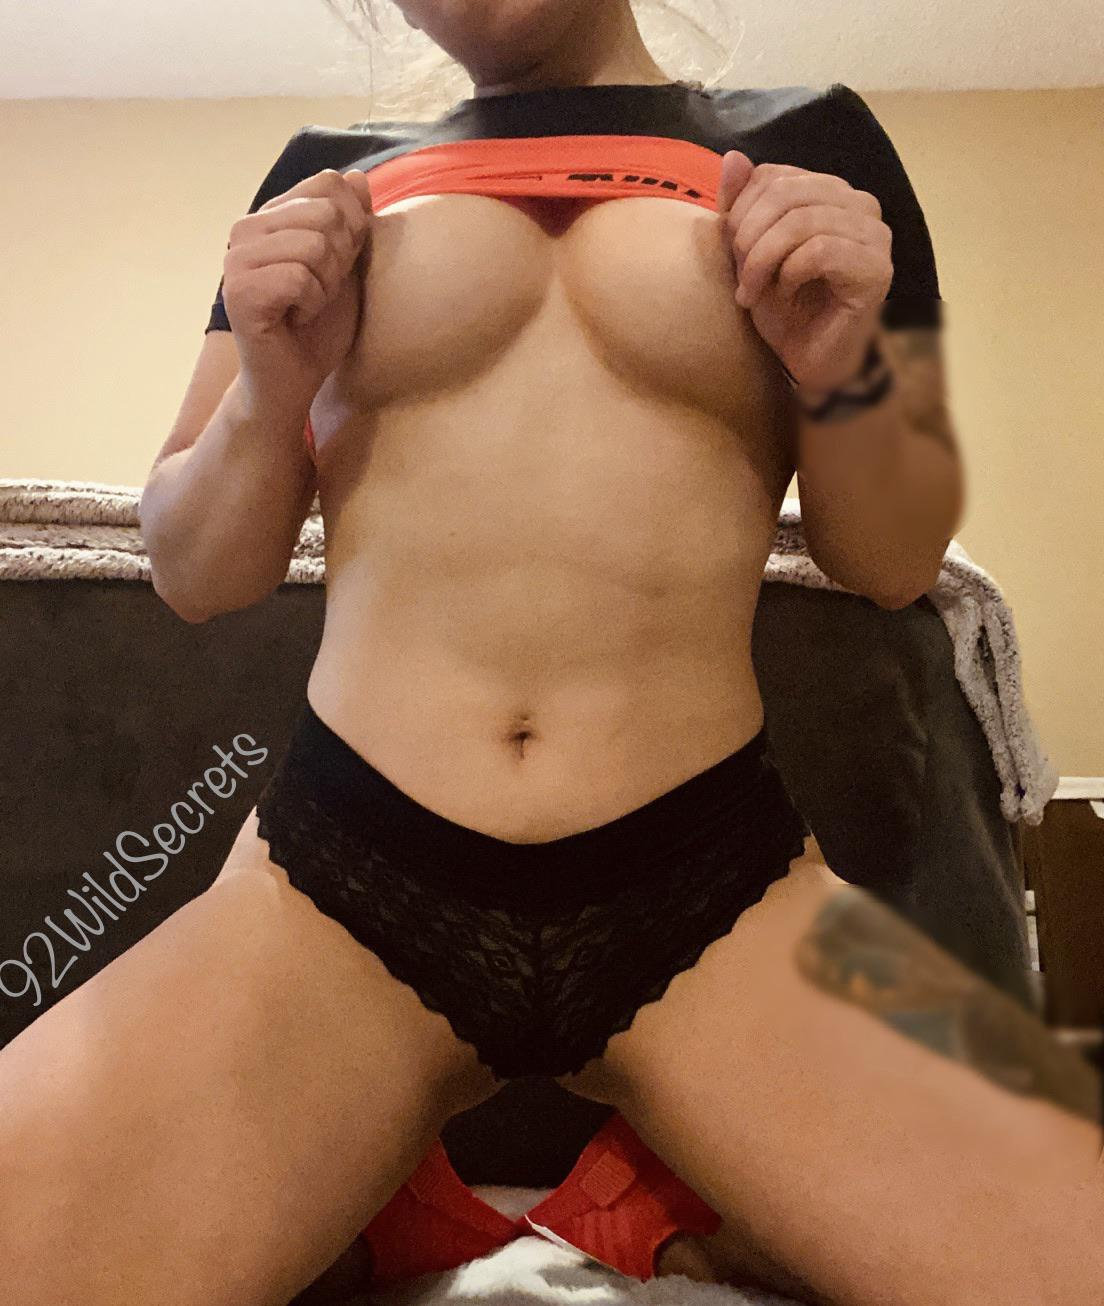 Cum Along With Me?